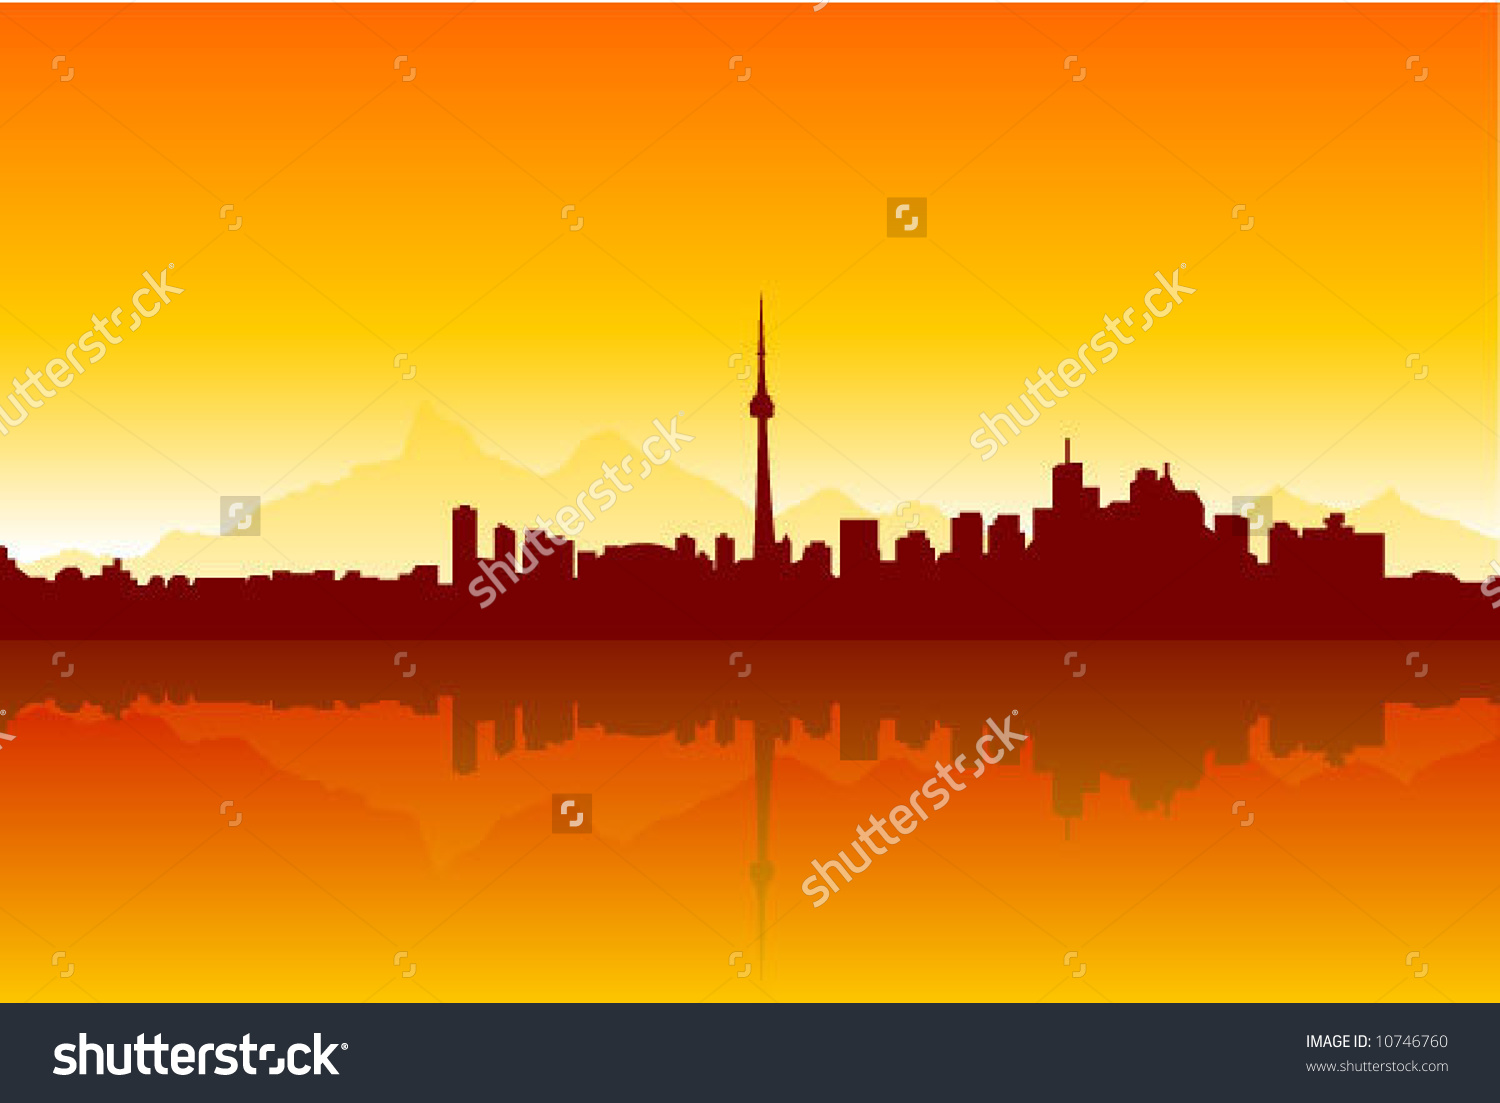 Sunny City Background Silhouette Stock Vector Illustration.